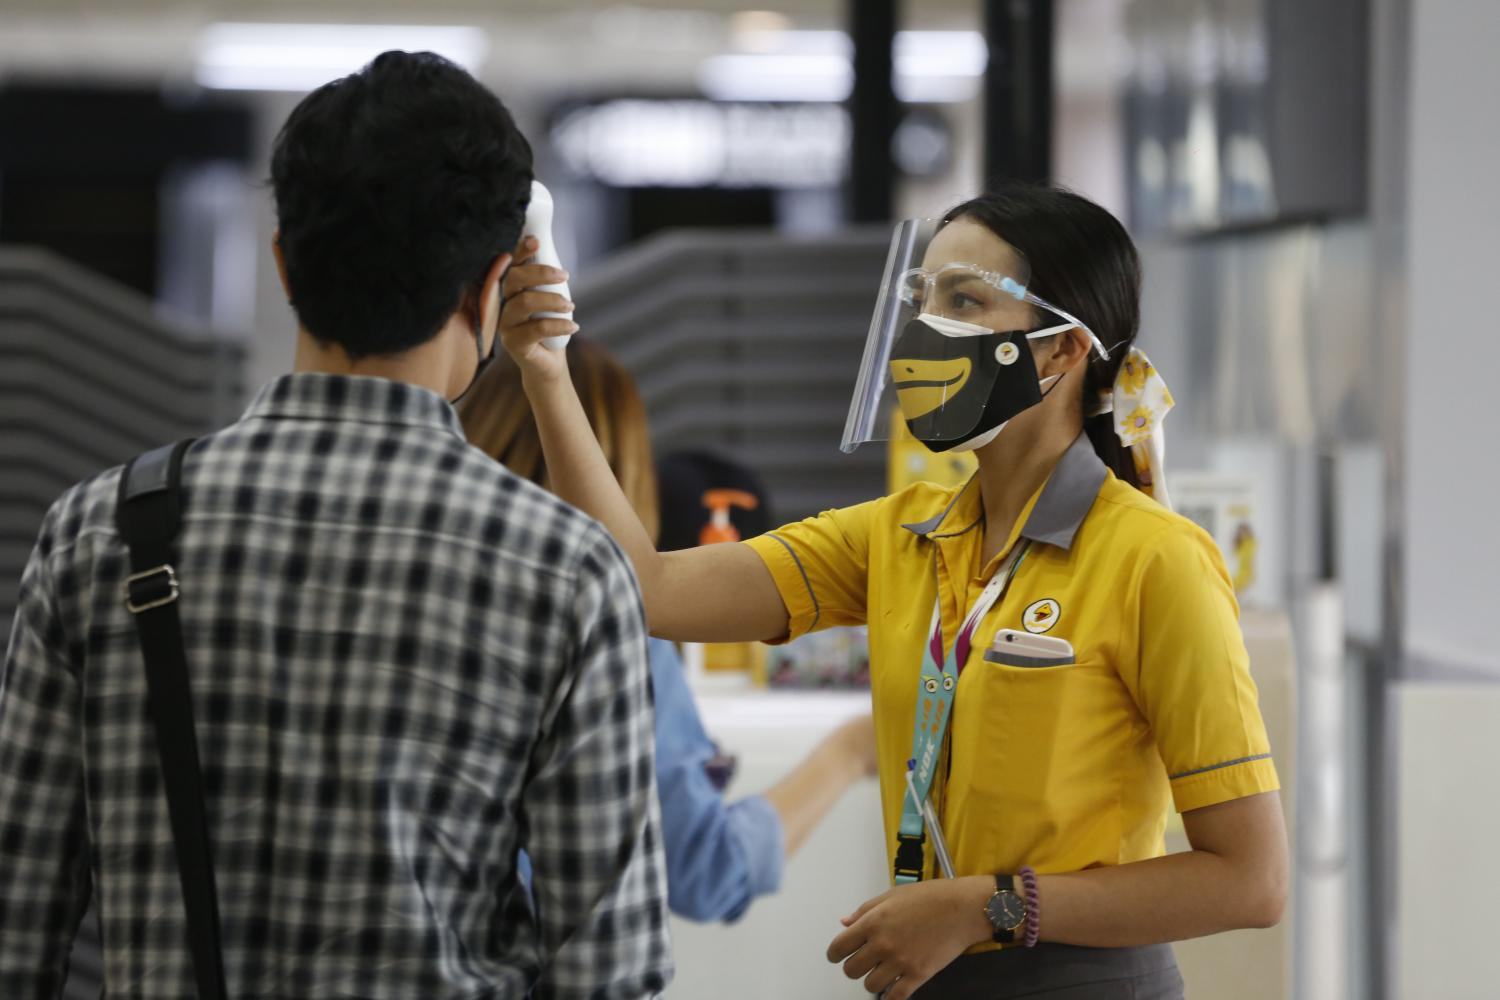 A Nok Air crew member screens passengers during check-in at Don Mueang airport.